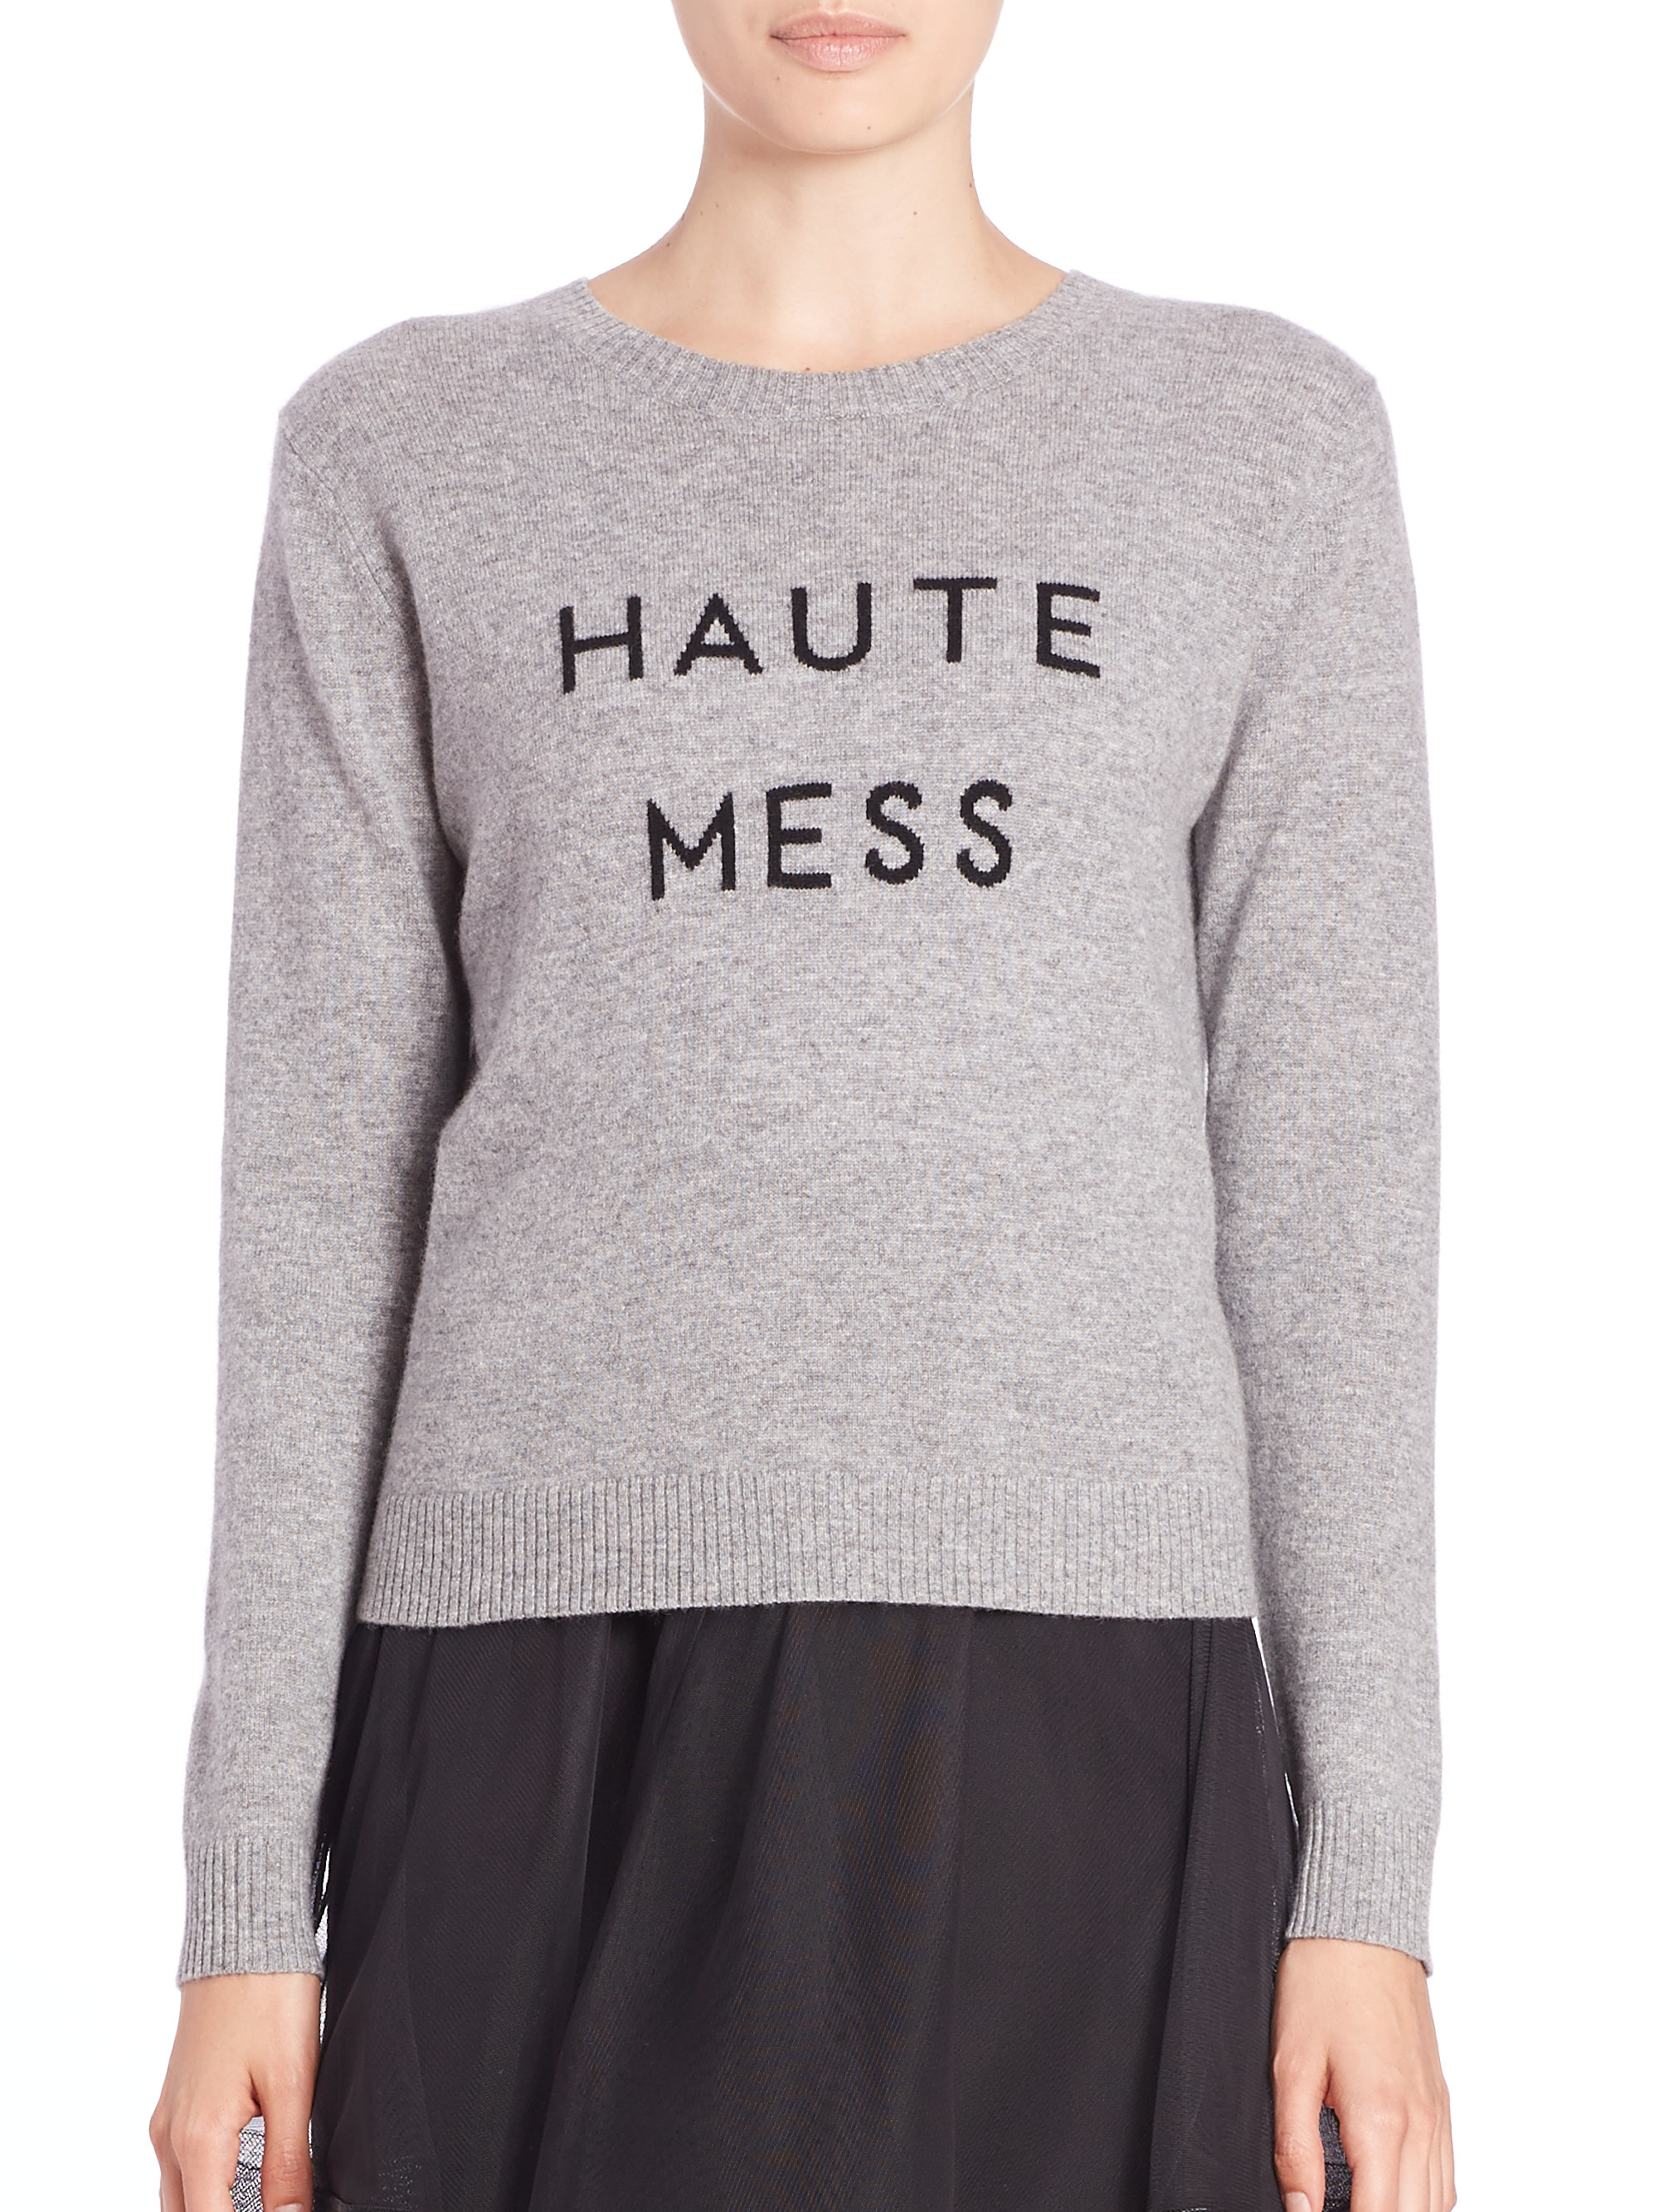 Milly Haute Mess Cashmere Sweater in Gray | Lyst